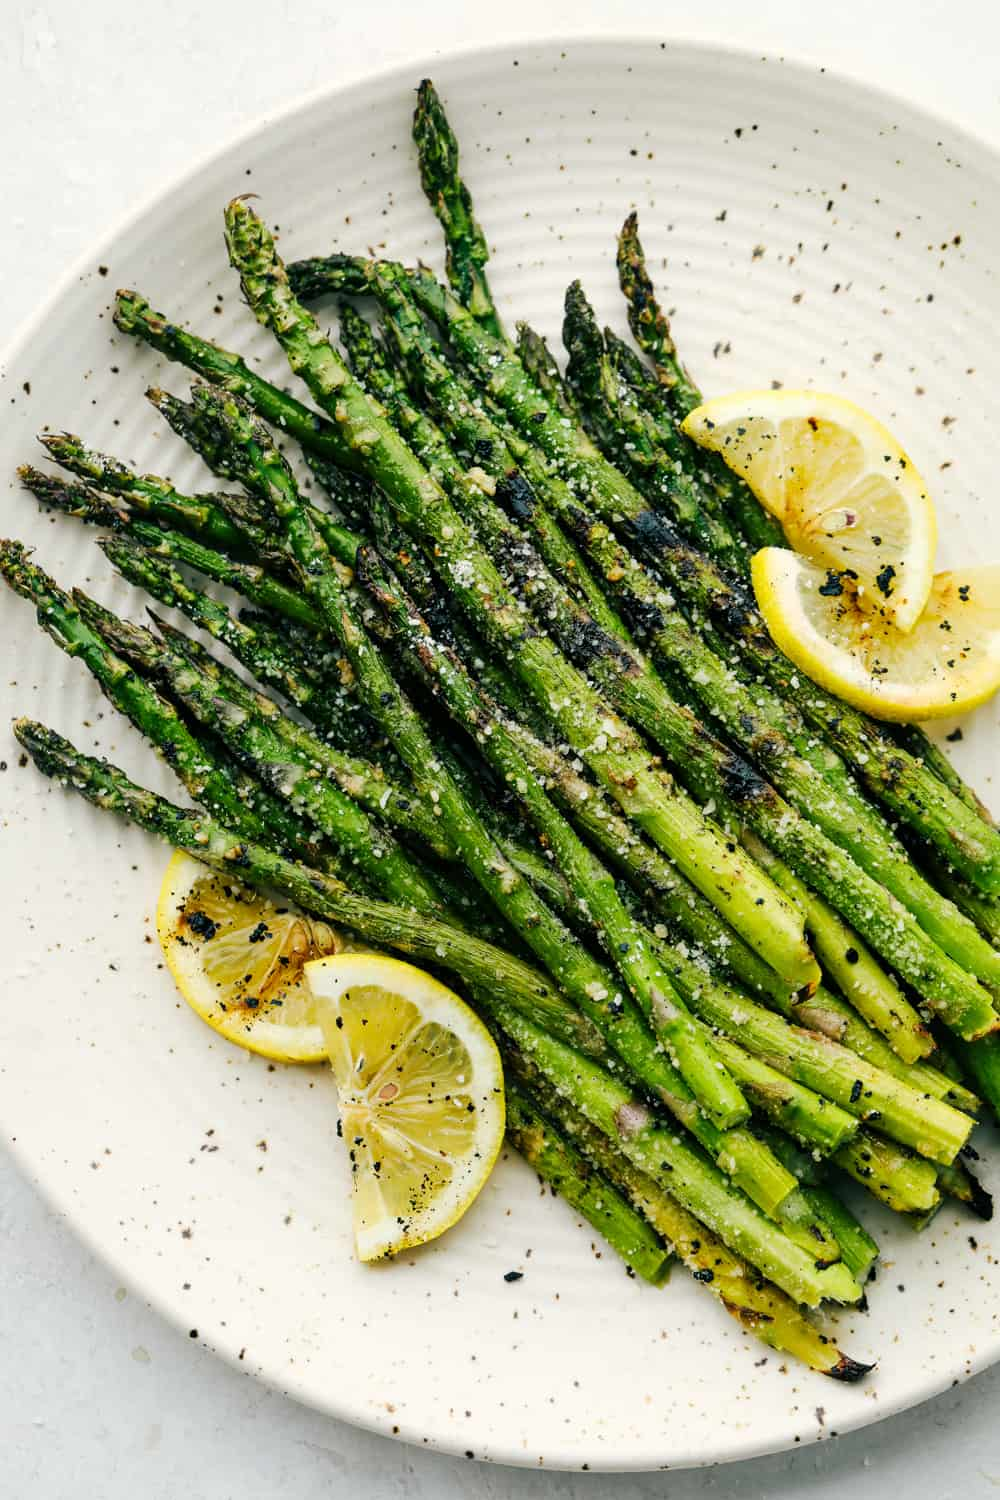 Grilled Asparagus on a white plate garnished with lemon wedges.